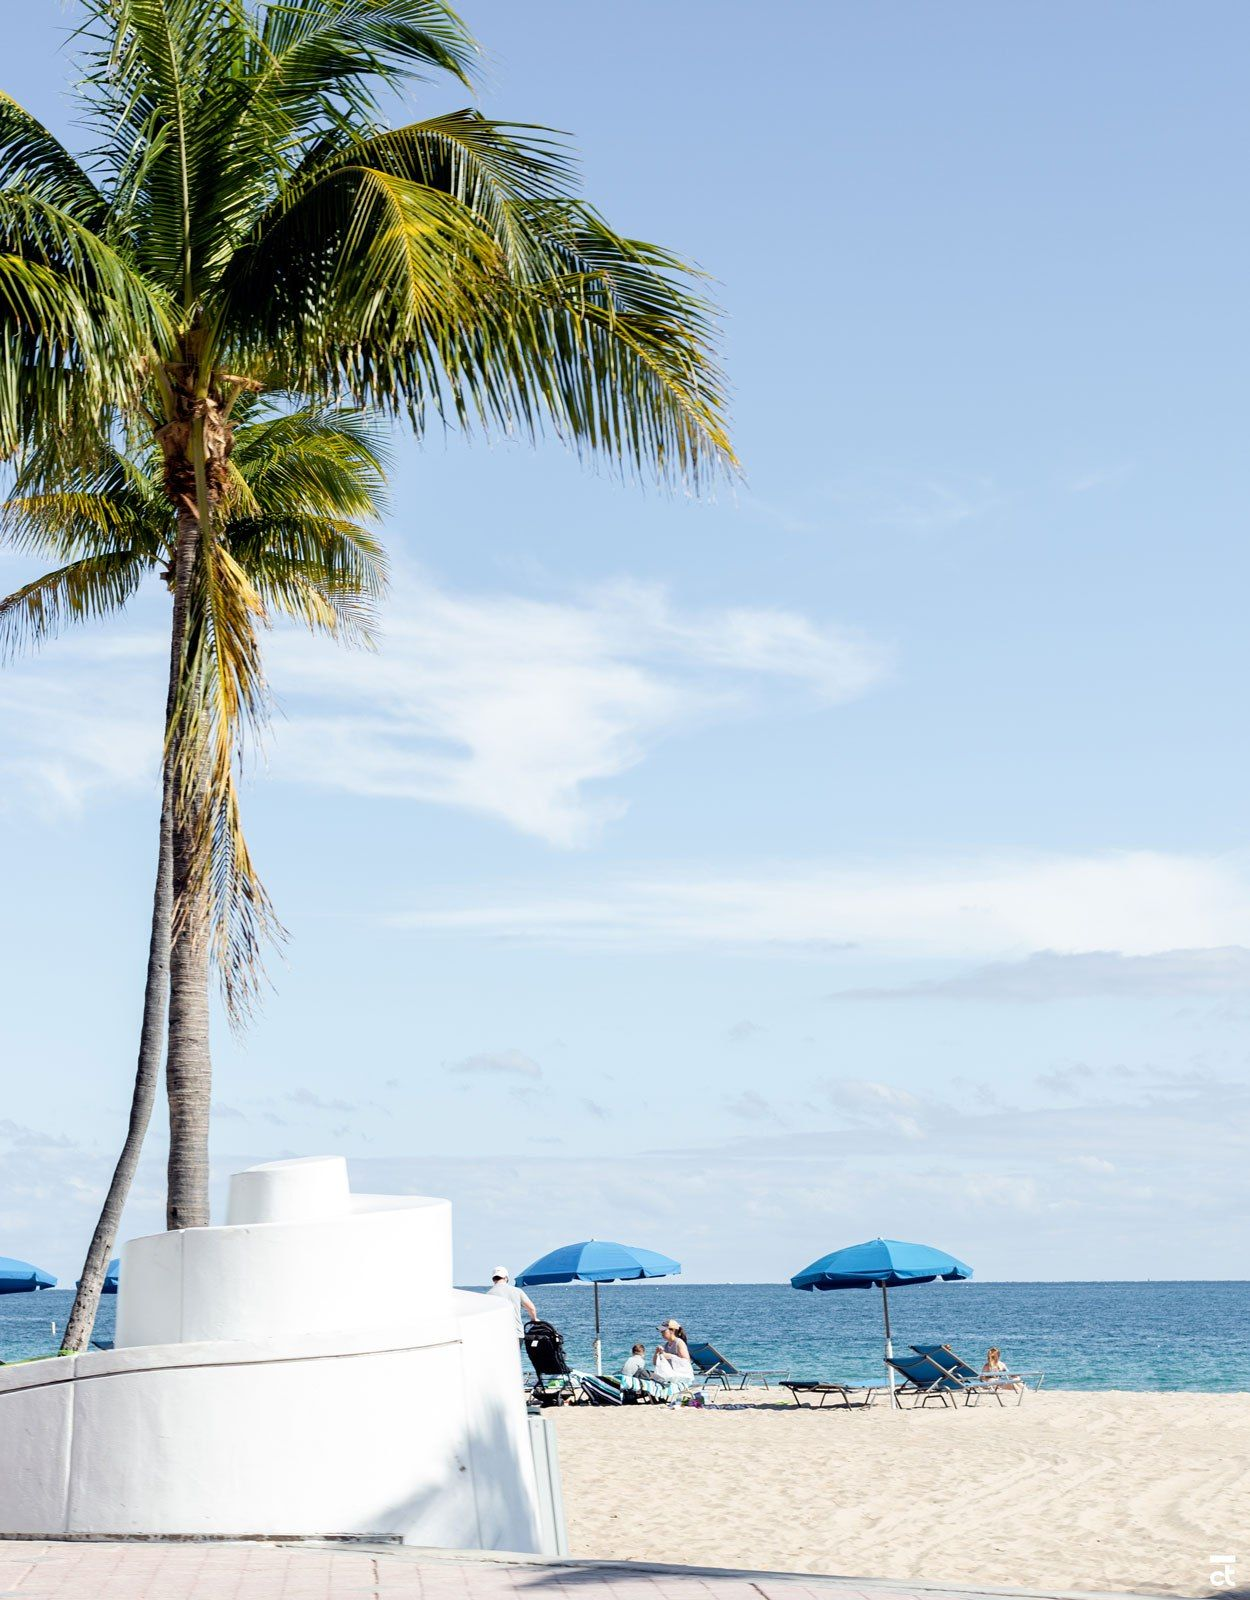 Fort Lauderdale Travel Guide: 25 Things To Do In Fort